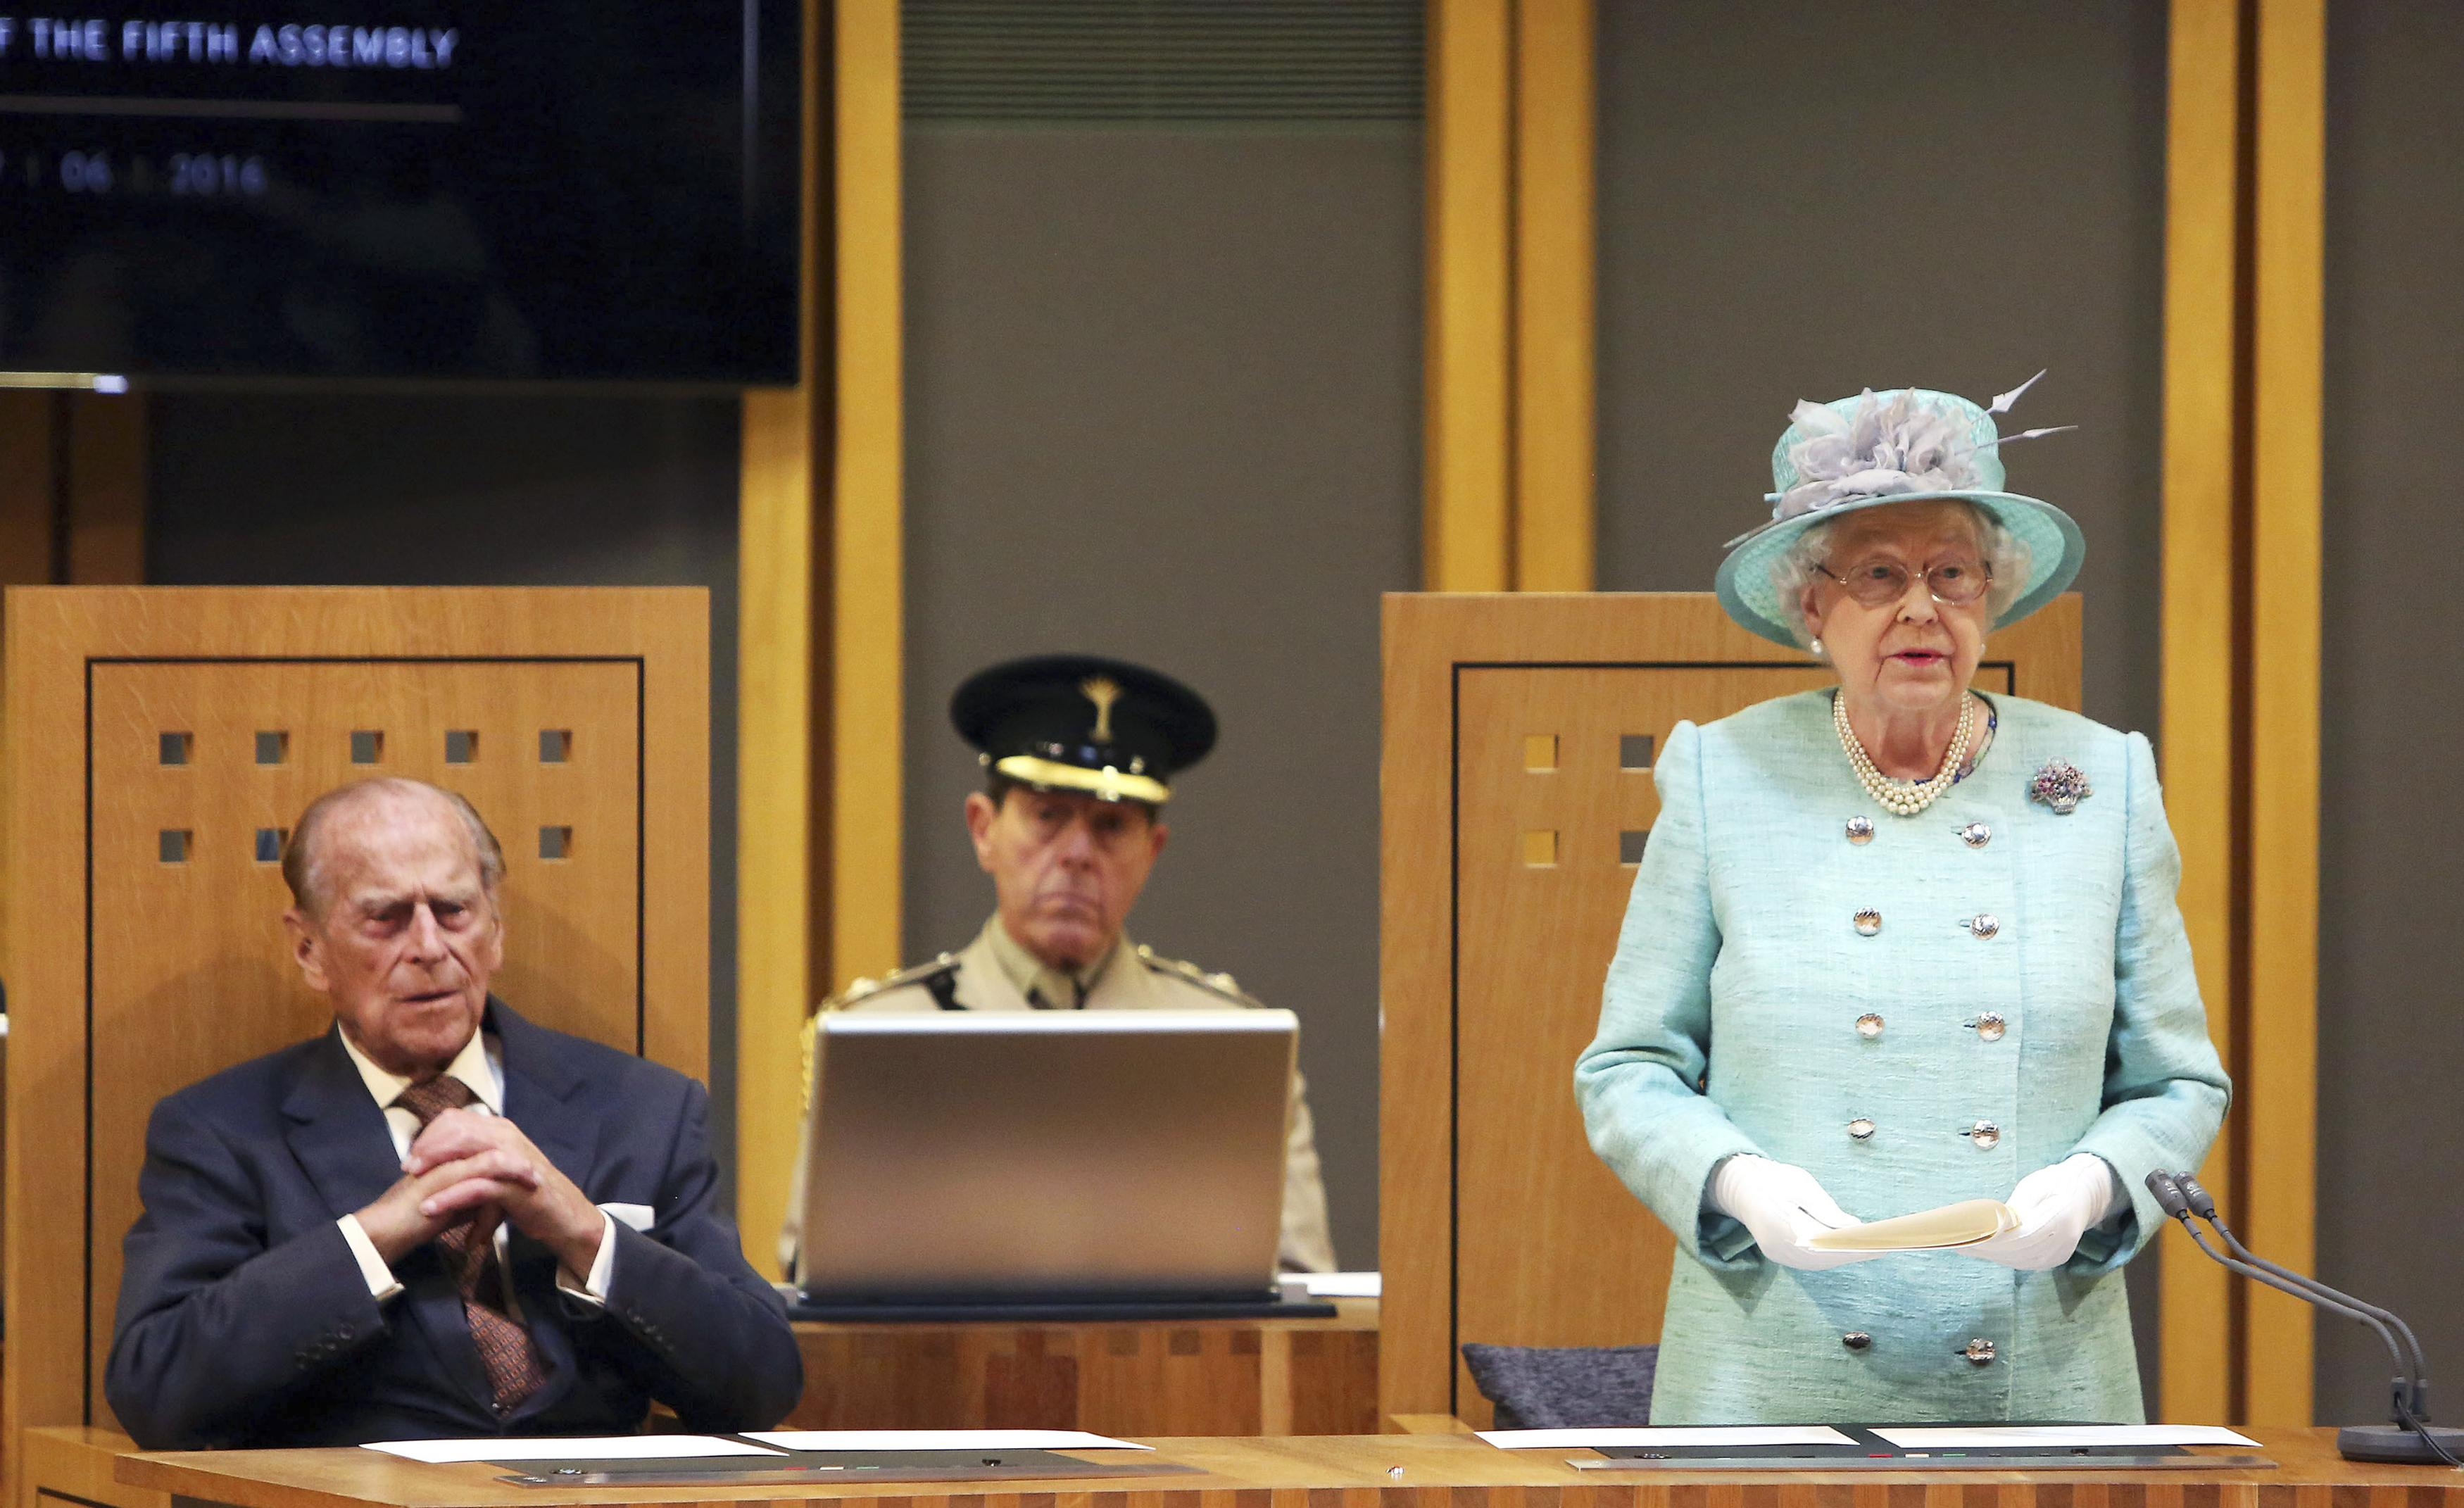 Queen Elizabeth and Prince Philip at the opening session of the National Assembly at the Senedd